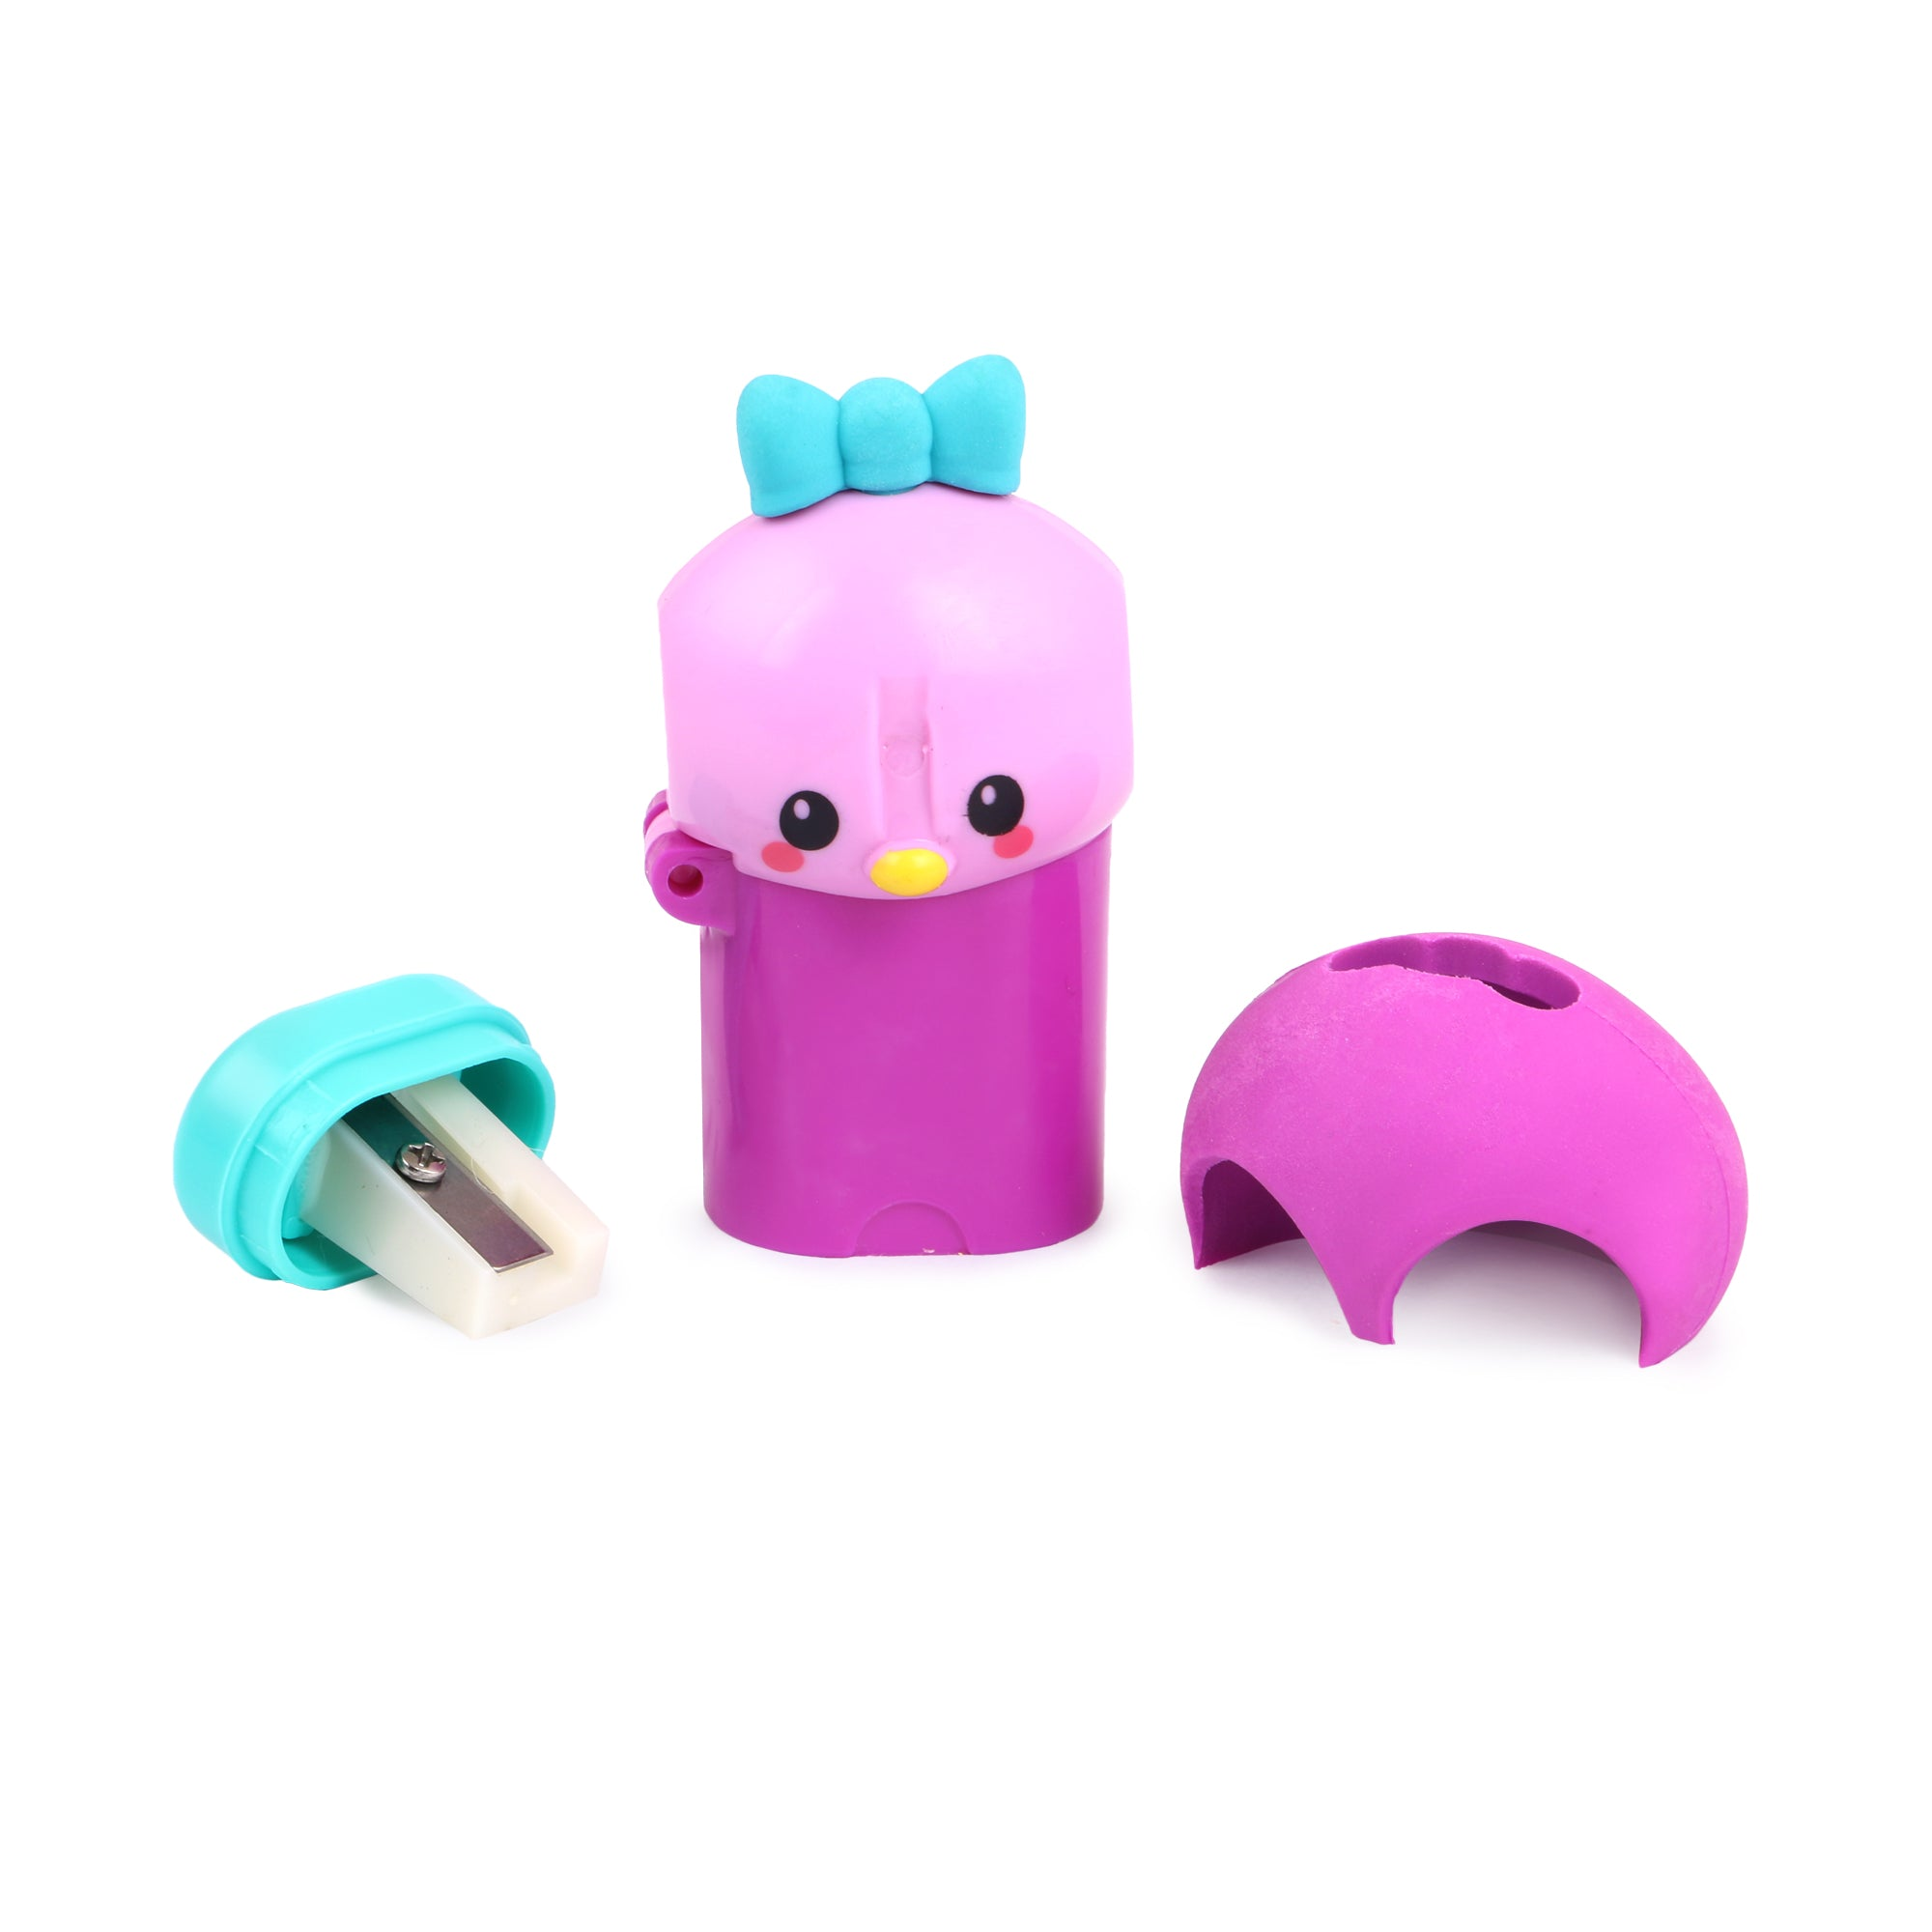 Scented Sharpener & Eraser Cuticon